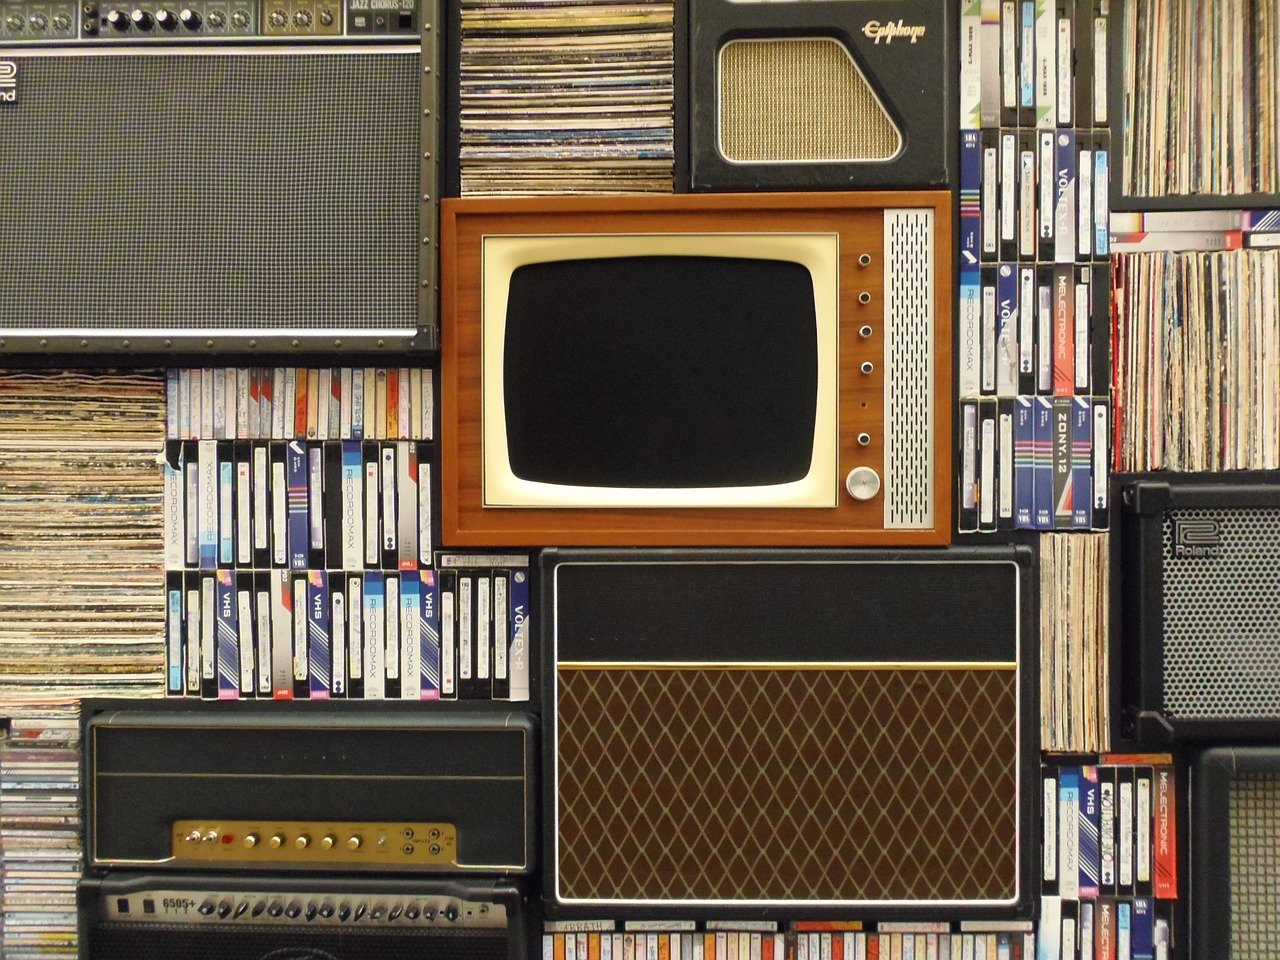 Airy TV Is the Entertainment Destination for Watching Free TV, Movies and Comedy